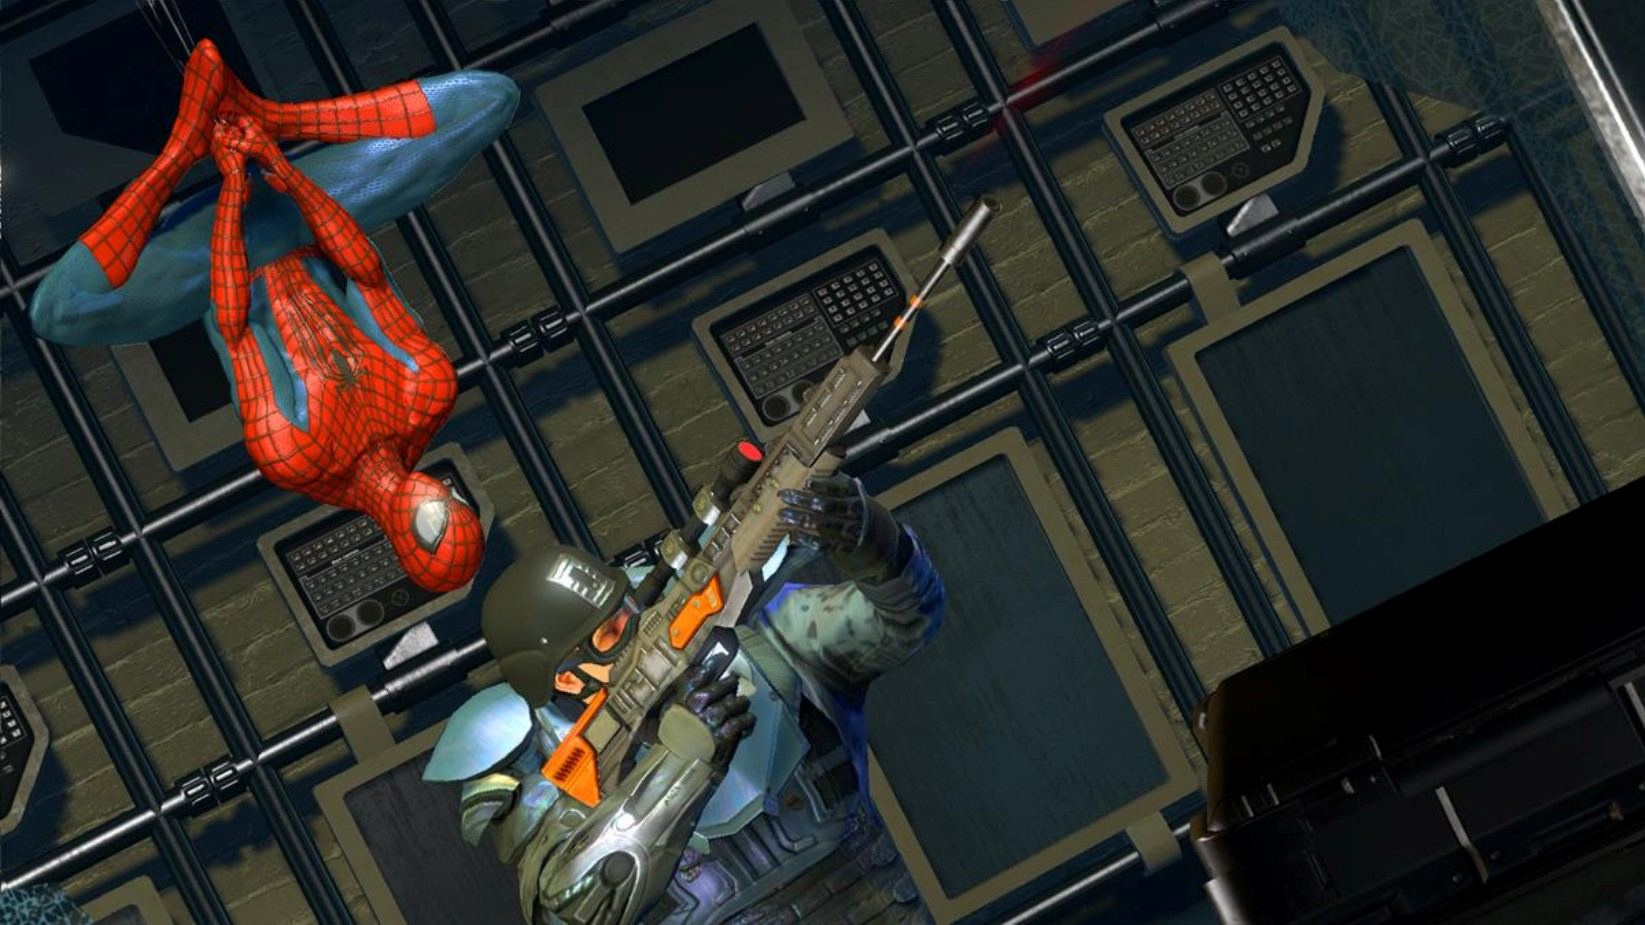 The Amazing Spider Man 2 is set to release later this year for Playstation 3, Playstation 4, Xbox 360, Xbox One, Nintendo Wii U, Nintendo 3DS and Windows PC